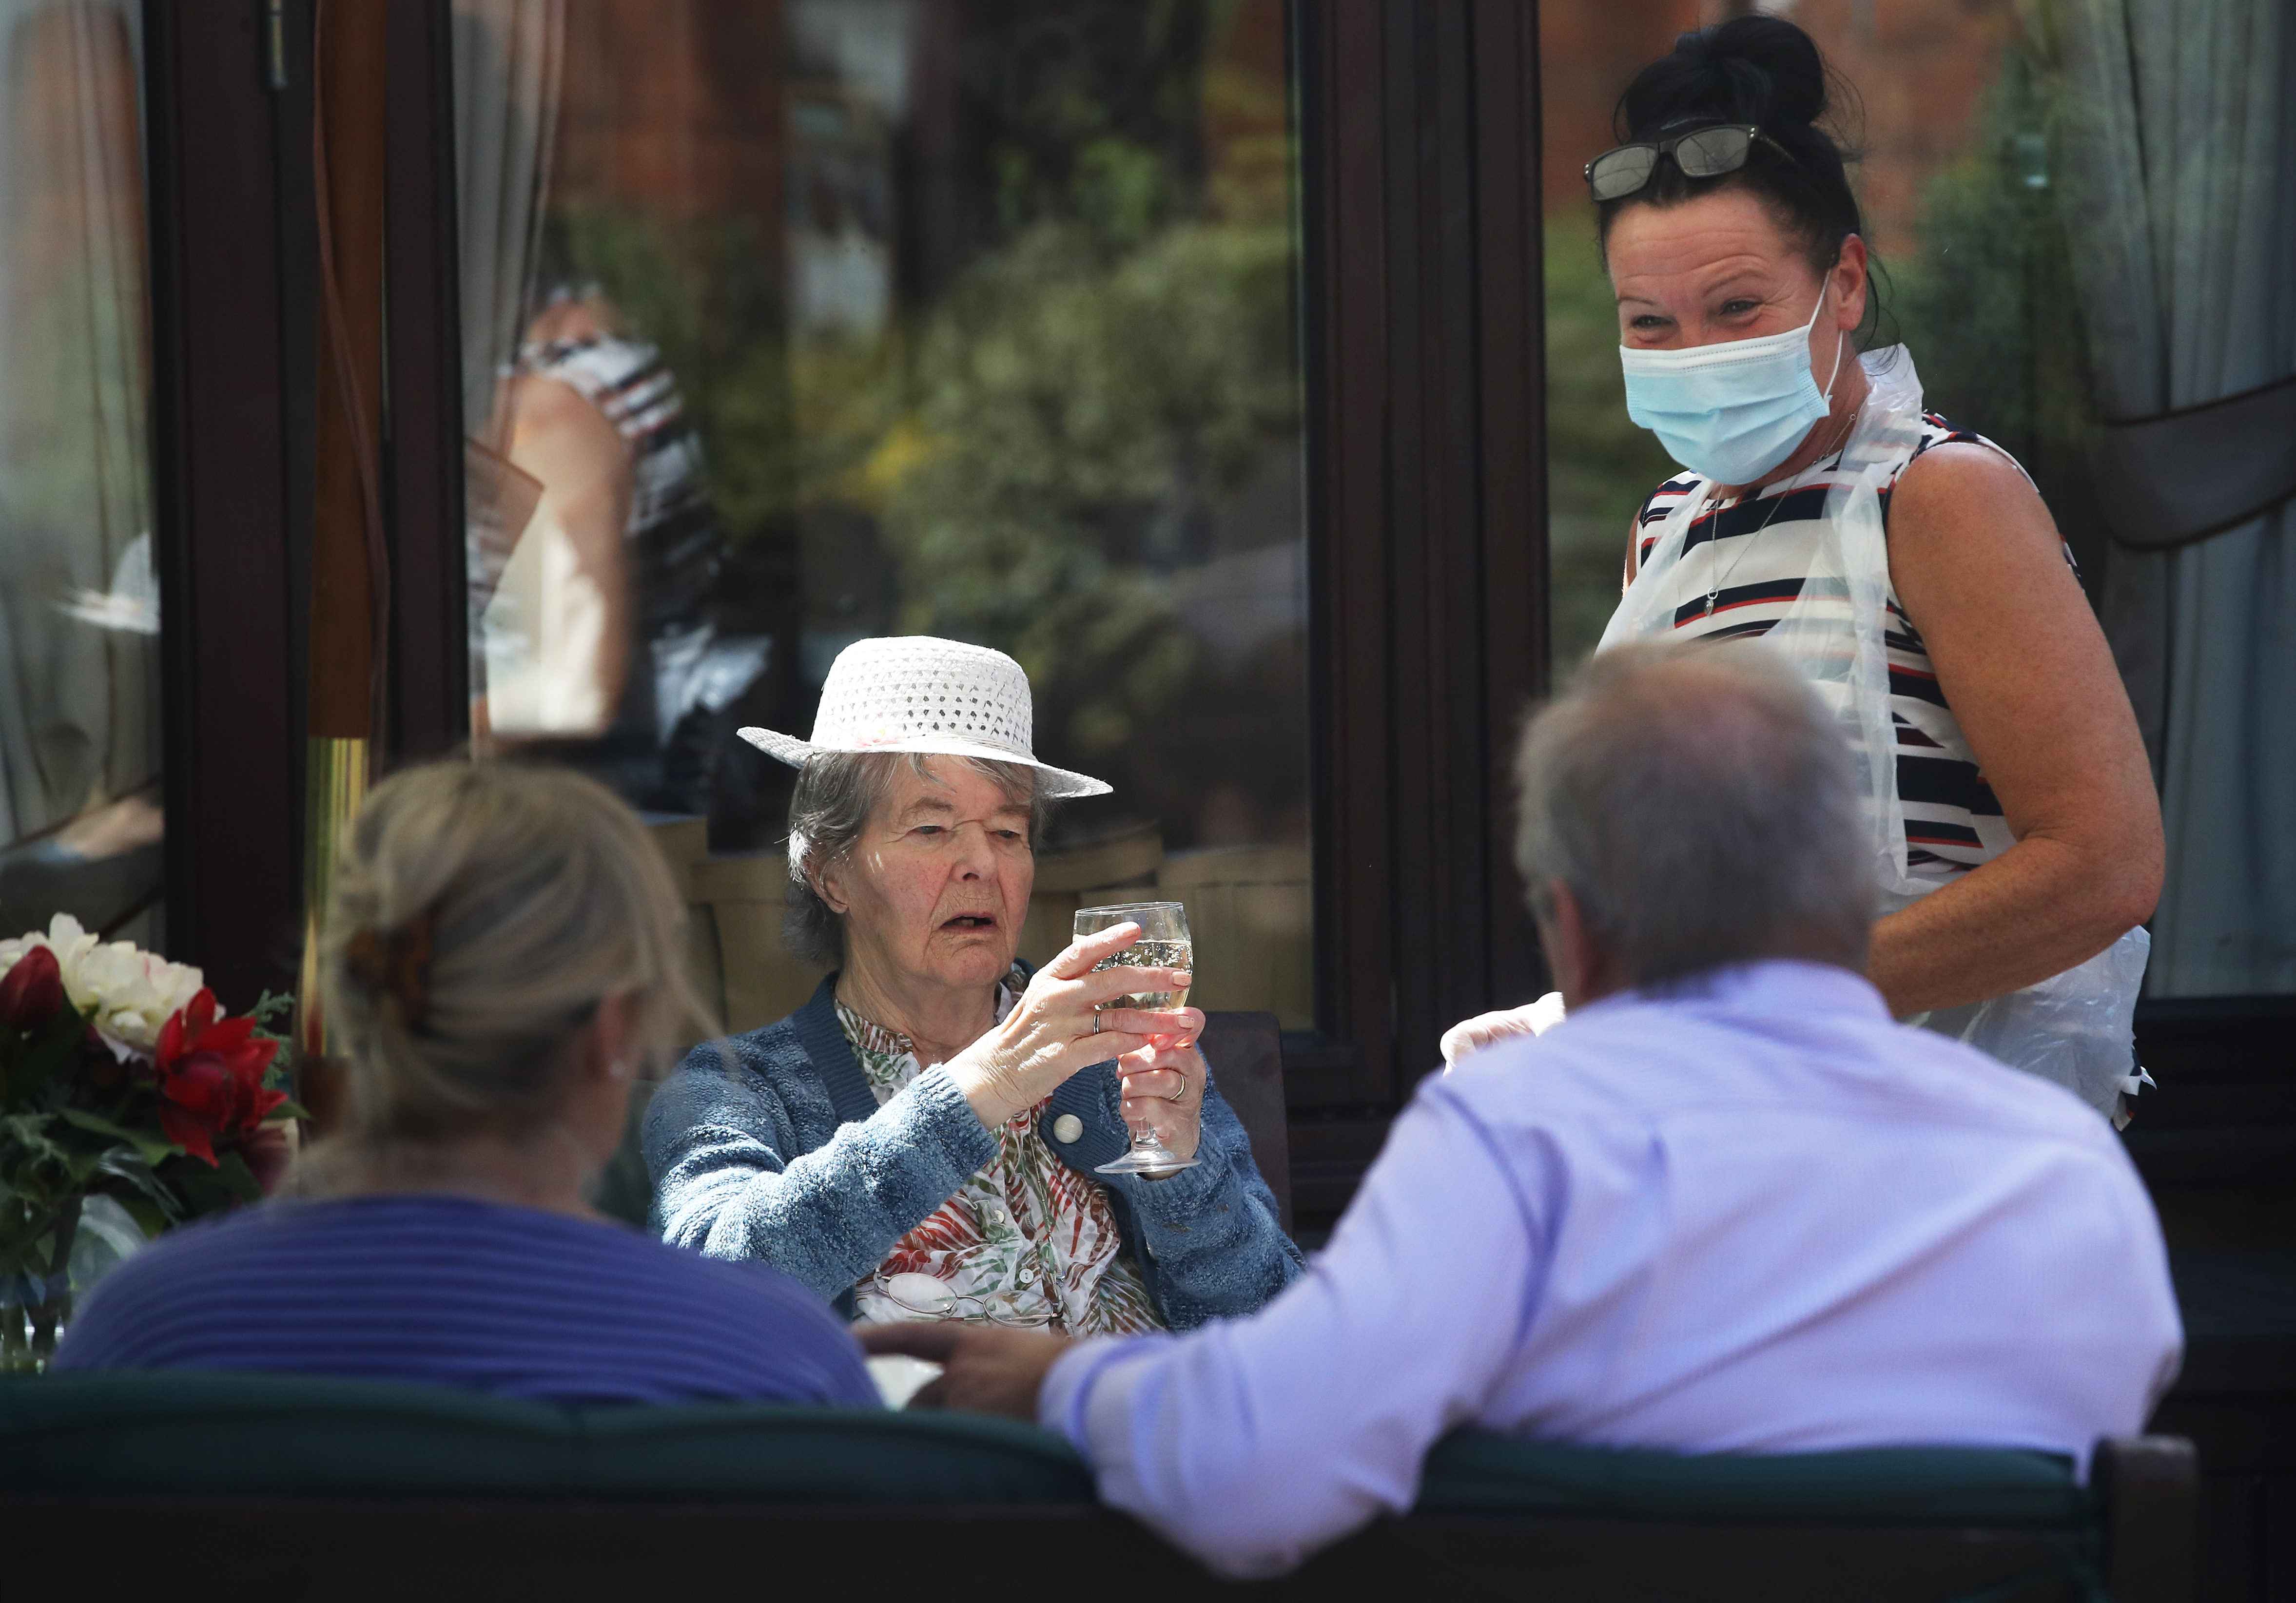 Margaret Yeoman, 90, sees her son John Yeoman, 62, and his wife Denise Yeoman, 63, for the first time in eight weeks as they visit her at the Eothen Homes care home in Whitley Bay, Tyneside, their first in person contact since lockdown began. (Photo by Owen Humphreys/PA Images via Getty Images)